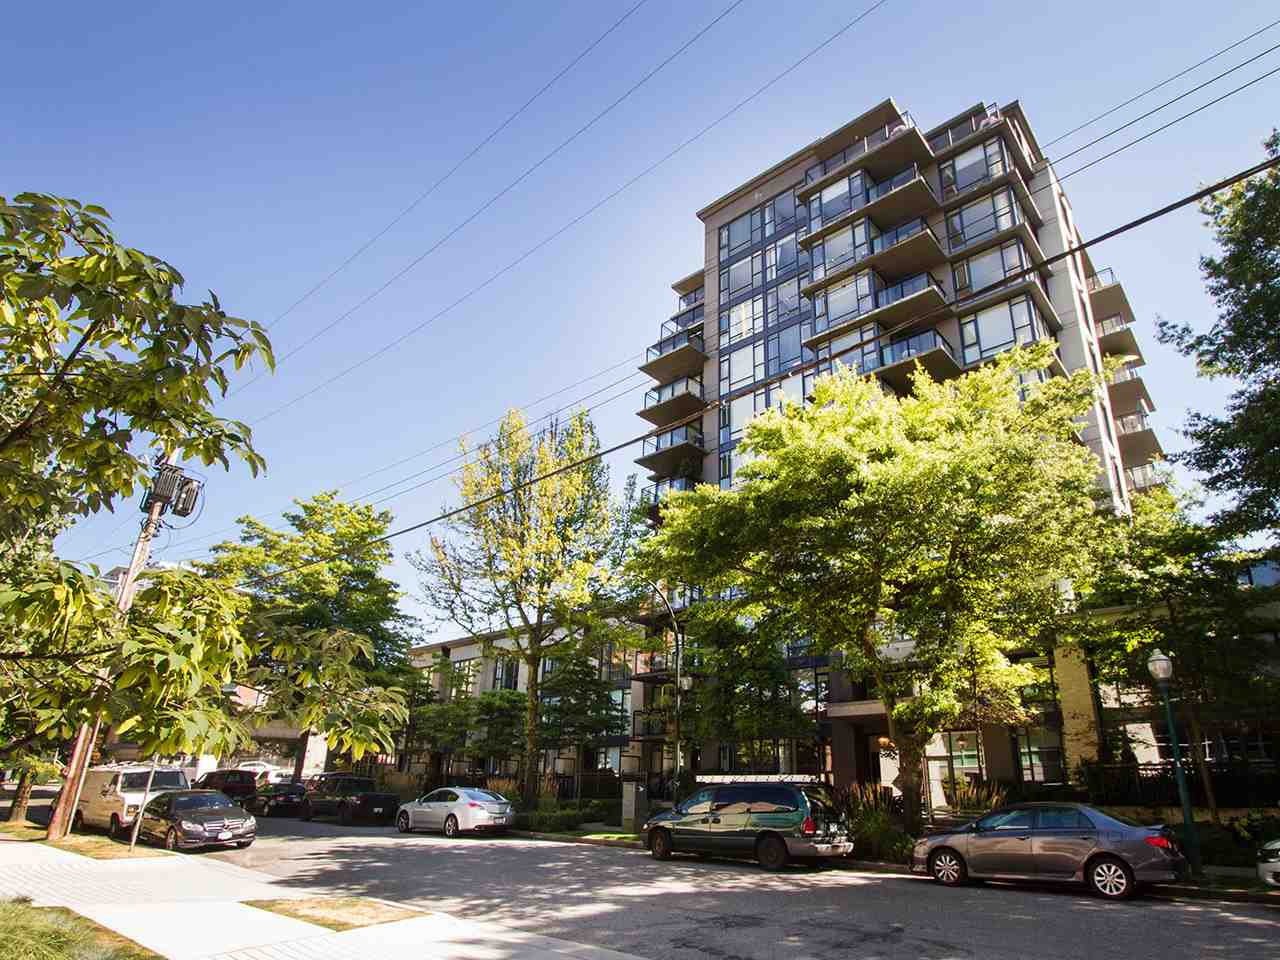 Photo 18: 1002 1650 W 7TH AVENUE in Vancouver: Fairview VW Condo for sale (Vancouver West)  : MLS® # R2022214